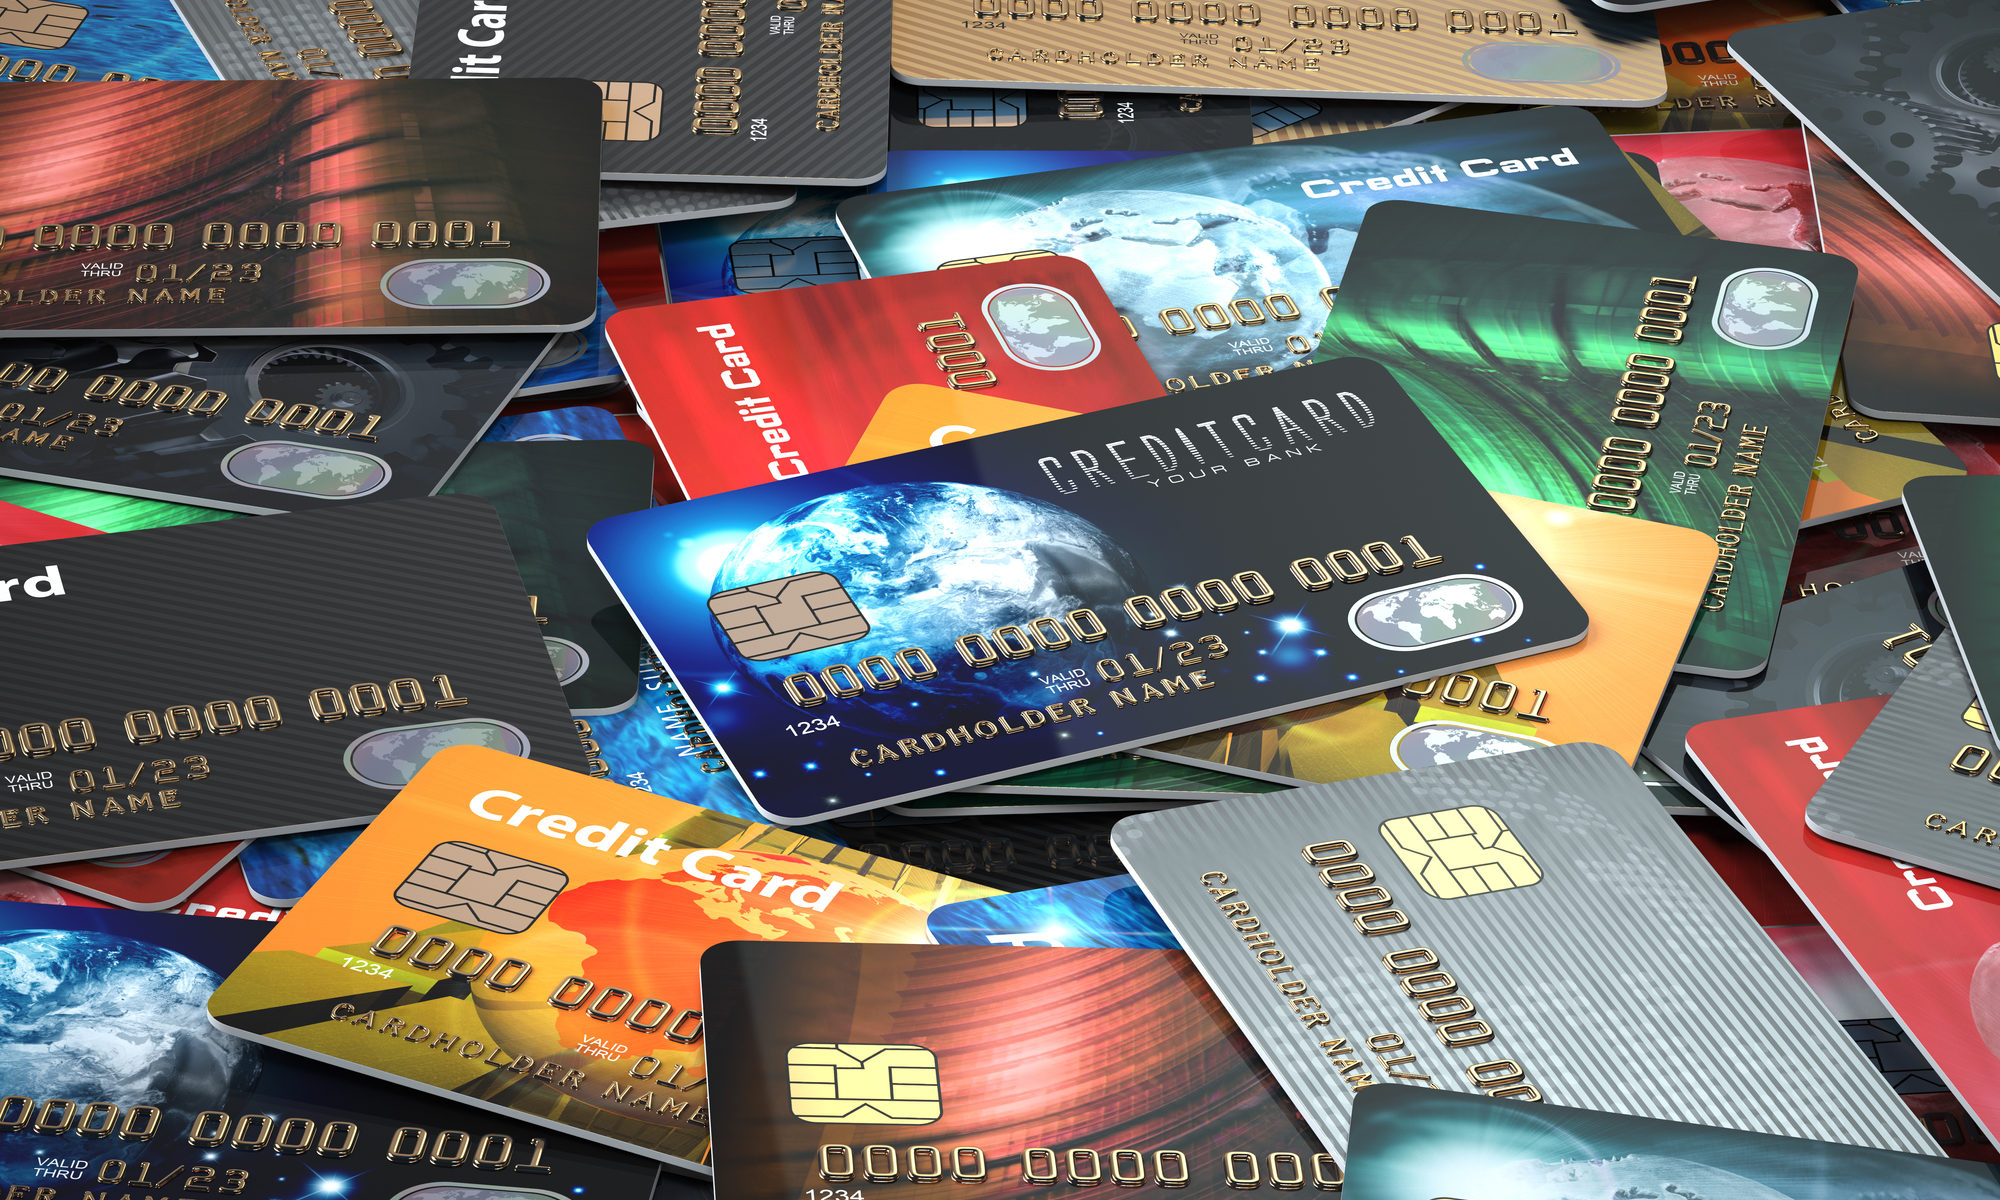 credit card debit card y2payments